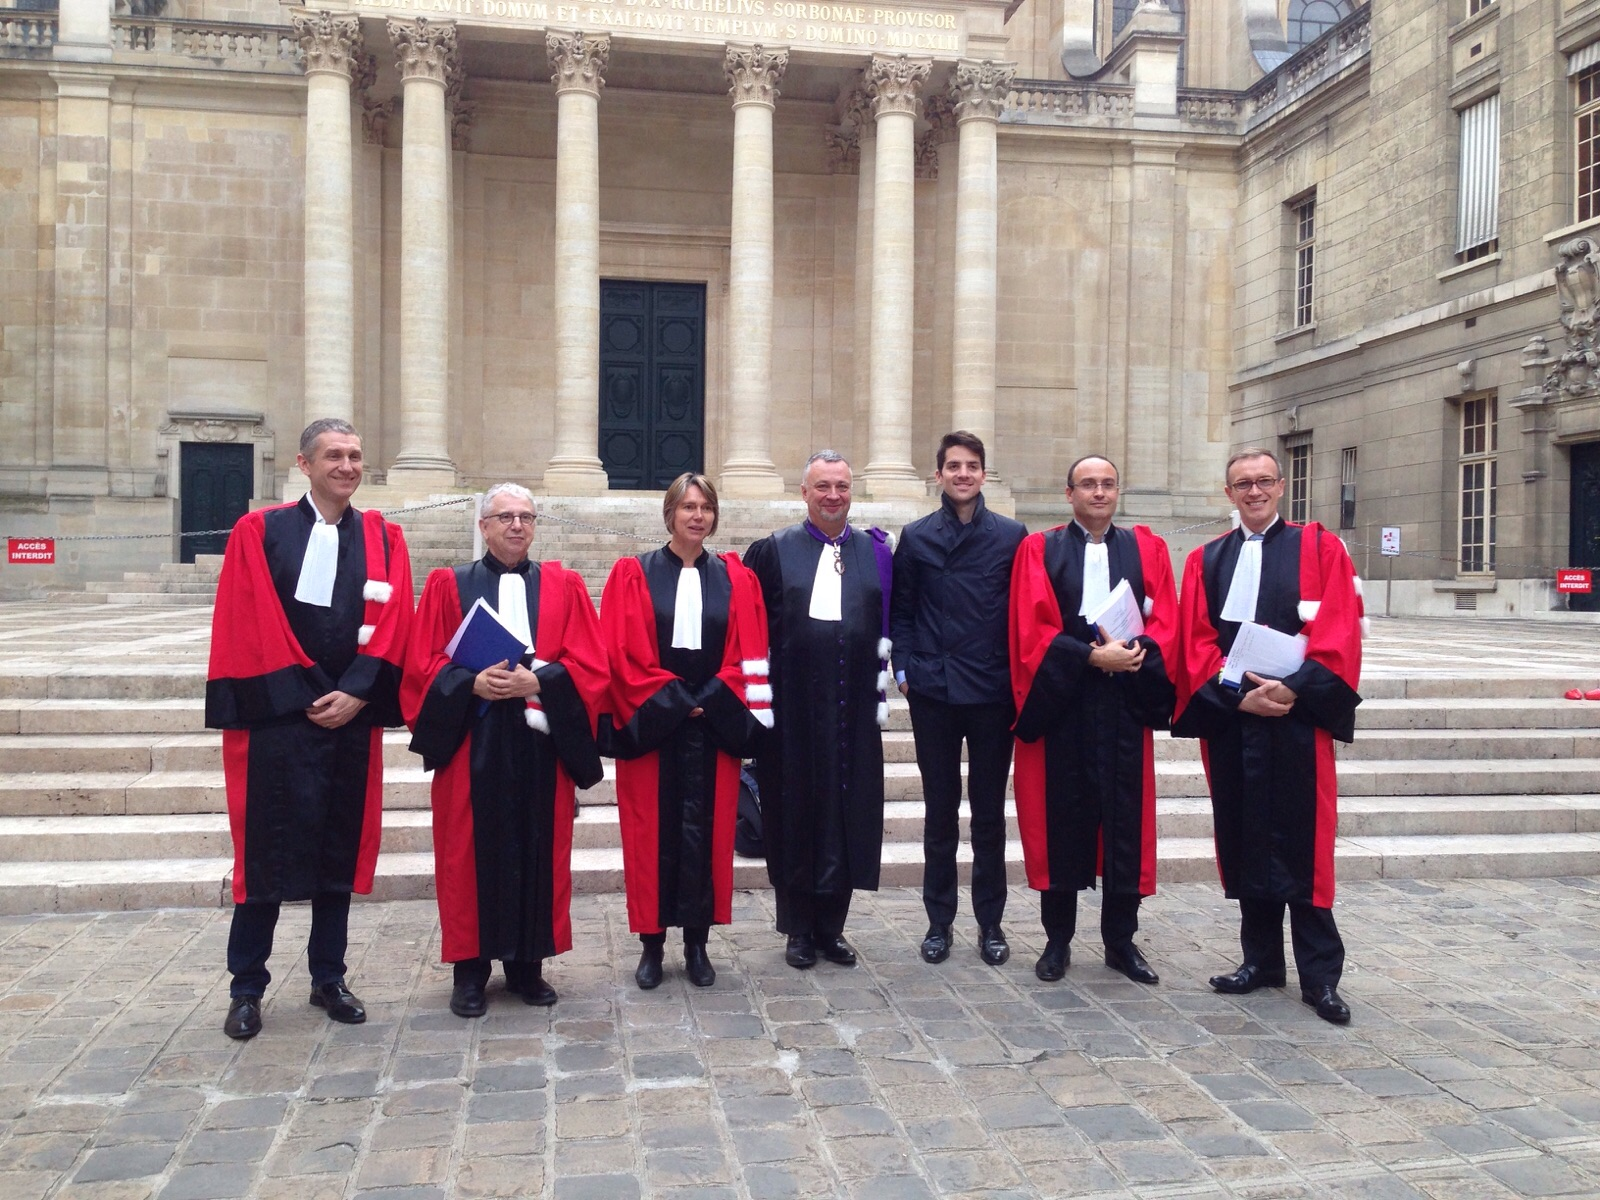 The jury: François Pétavy (CEO of eYeka), Prof. Decuadin (Toulouse University), Prof. Le Nagard (ESSEC Business School), Rector Steyer (Sorbonne University), me, Prof. Lemoine (Sorbonne University), Prof. Morisse (ESSCA School of Management)